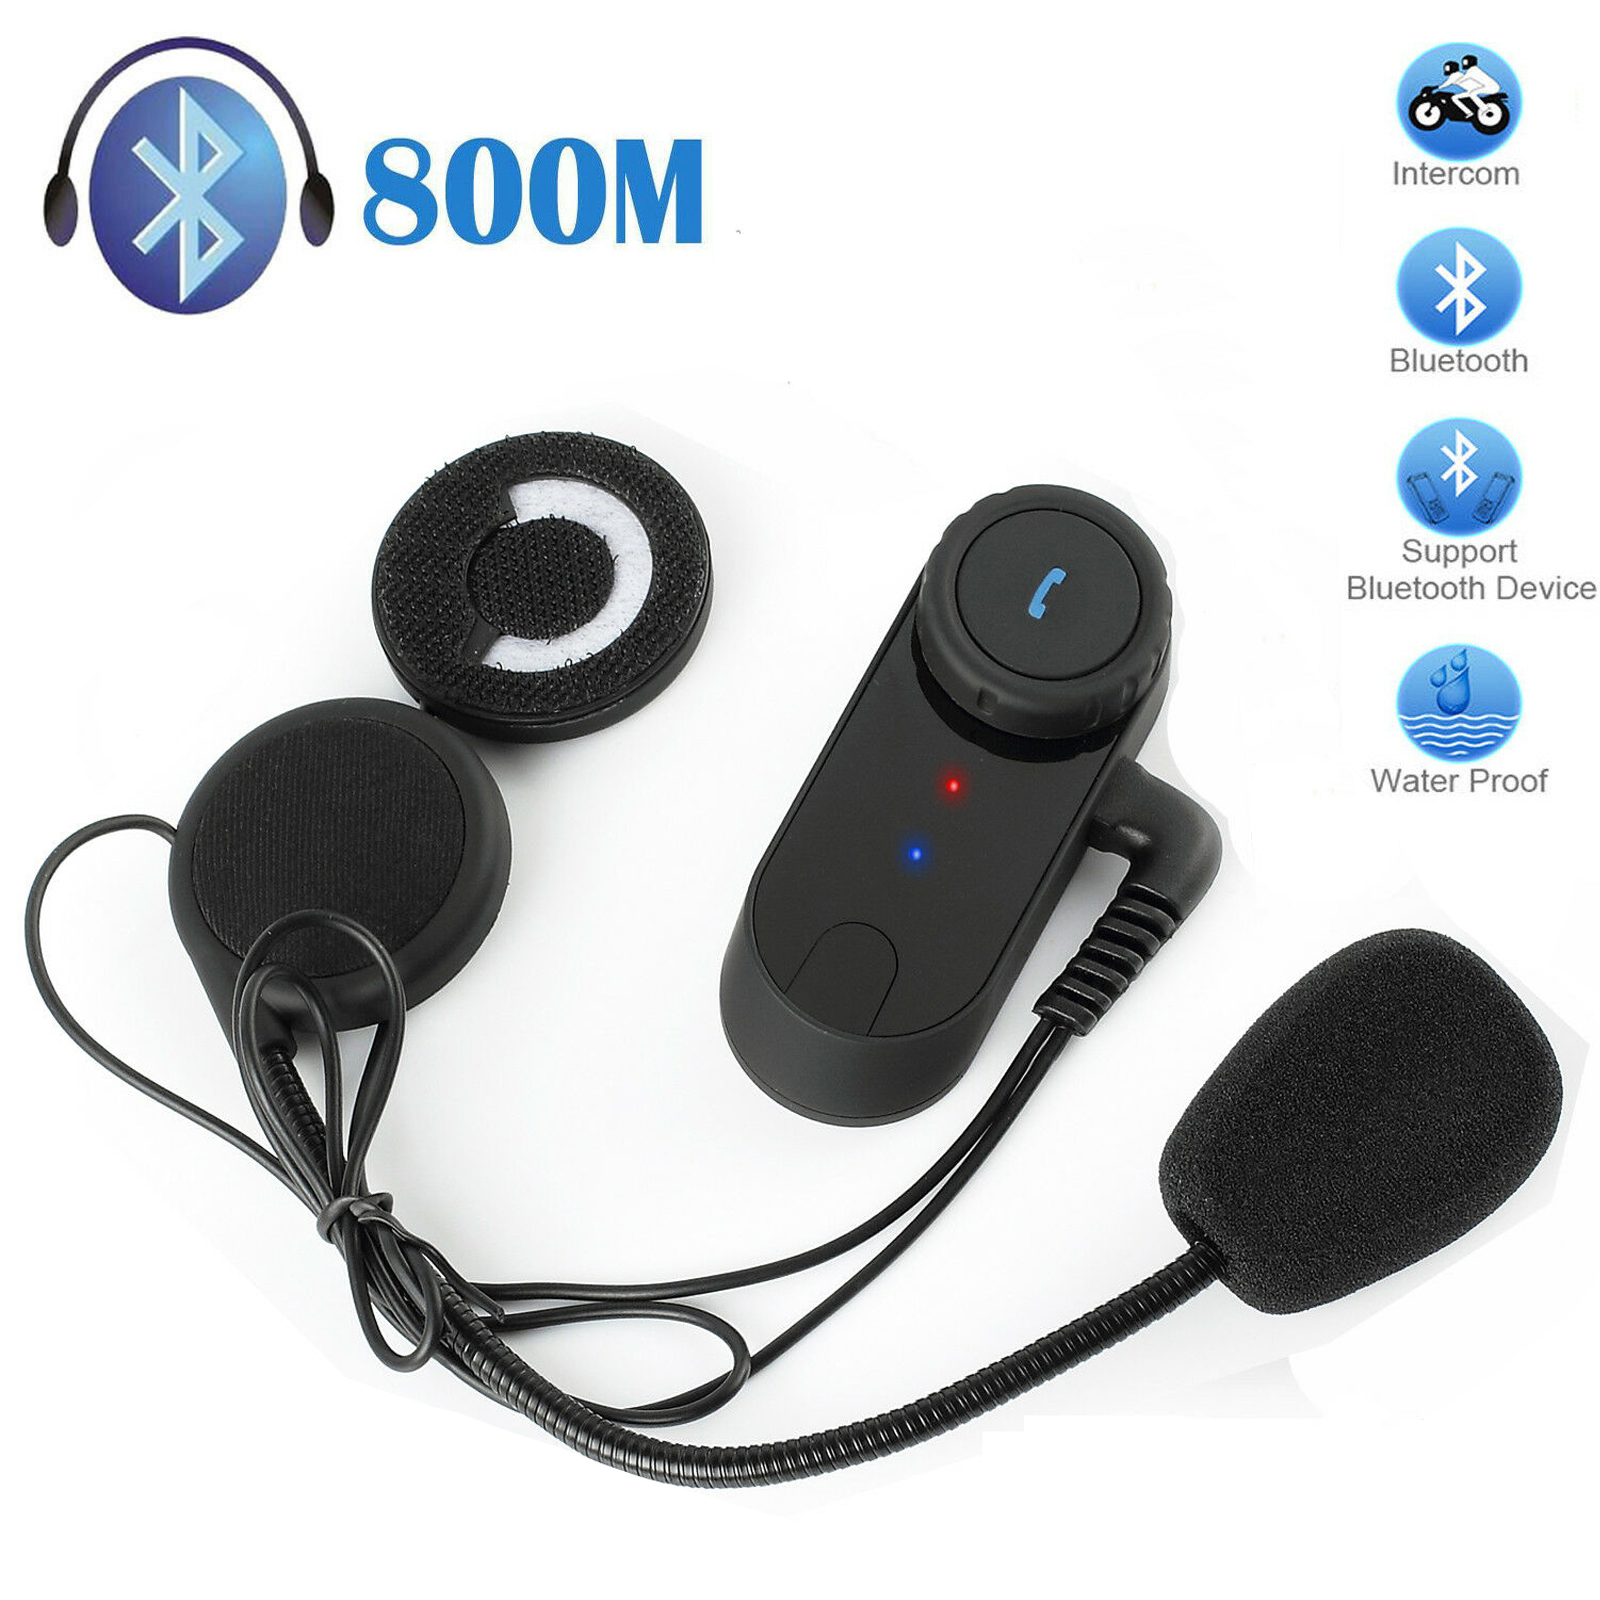 800M Motor Wireless Bluetooth Headset Motorcycle Helmet Earphone Headphone Speaker Handsfree Music For MP3 MP4 Smartphone-in Helmet Headsets from Automobiles & Motorcycles    1